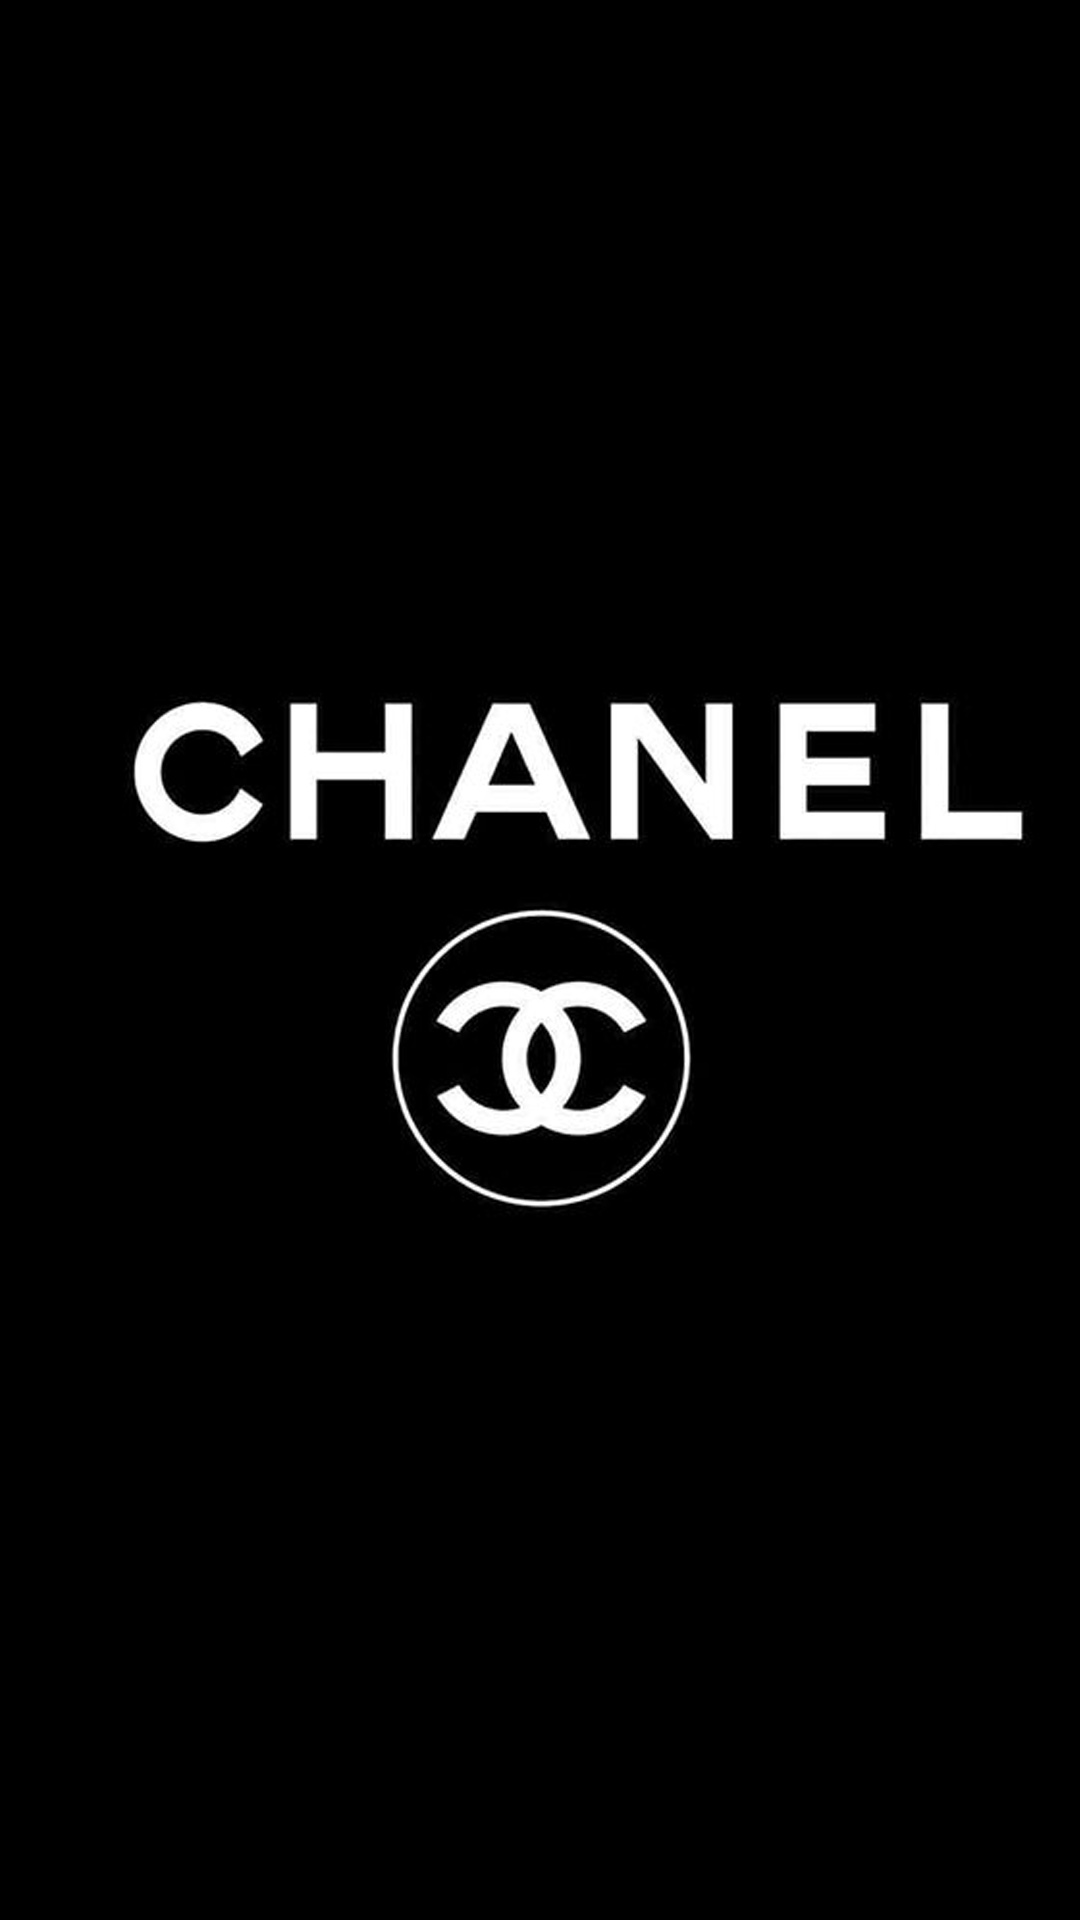 Cool Cute Girly Wallpapers Chanel Iphone Wallpapers Hd Pixelstalk Net